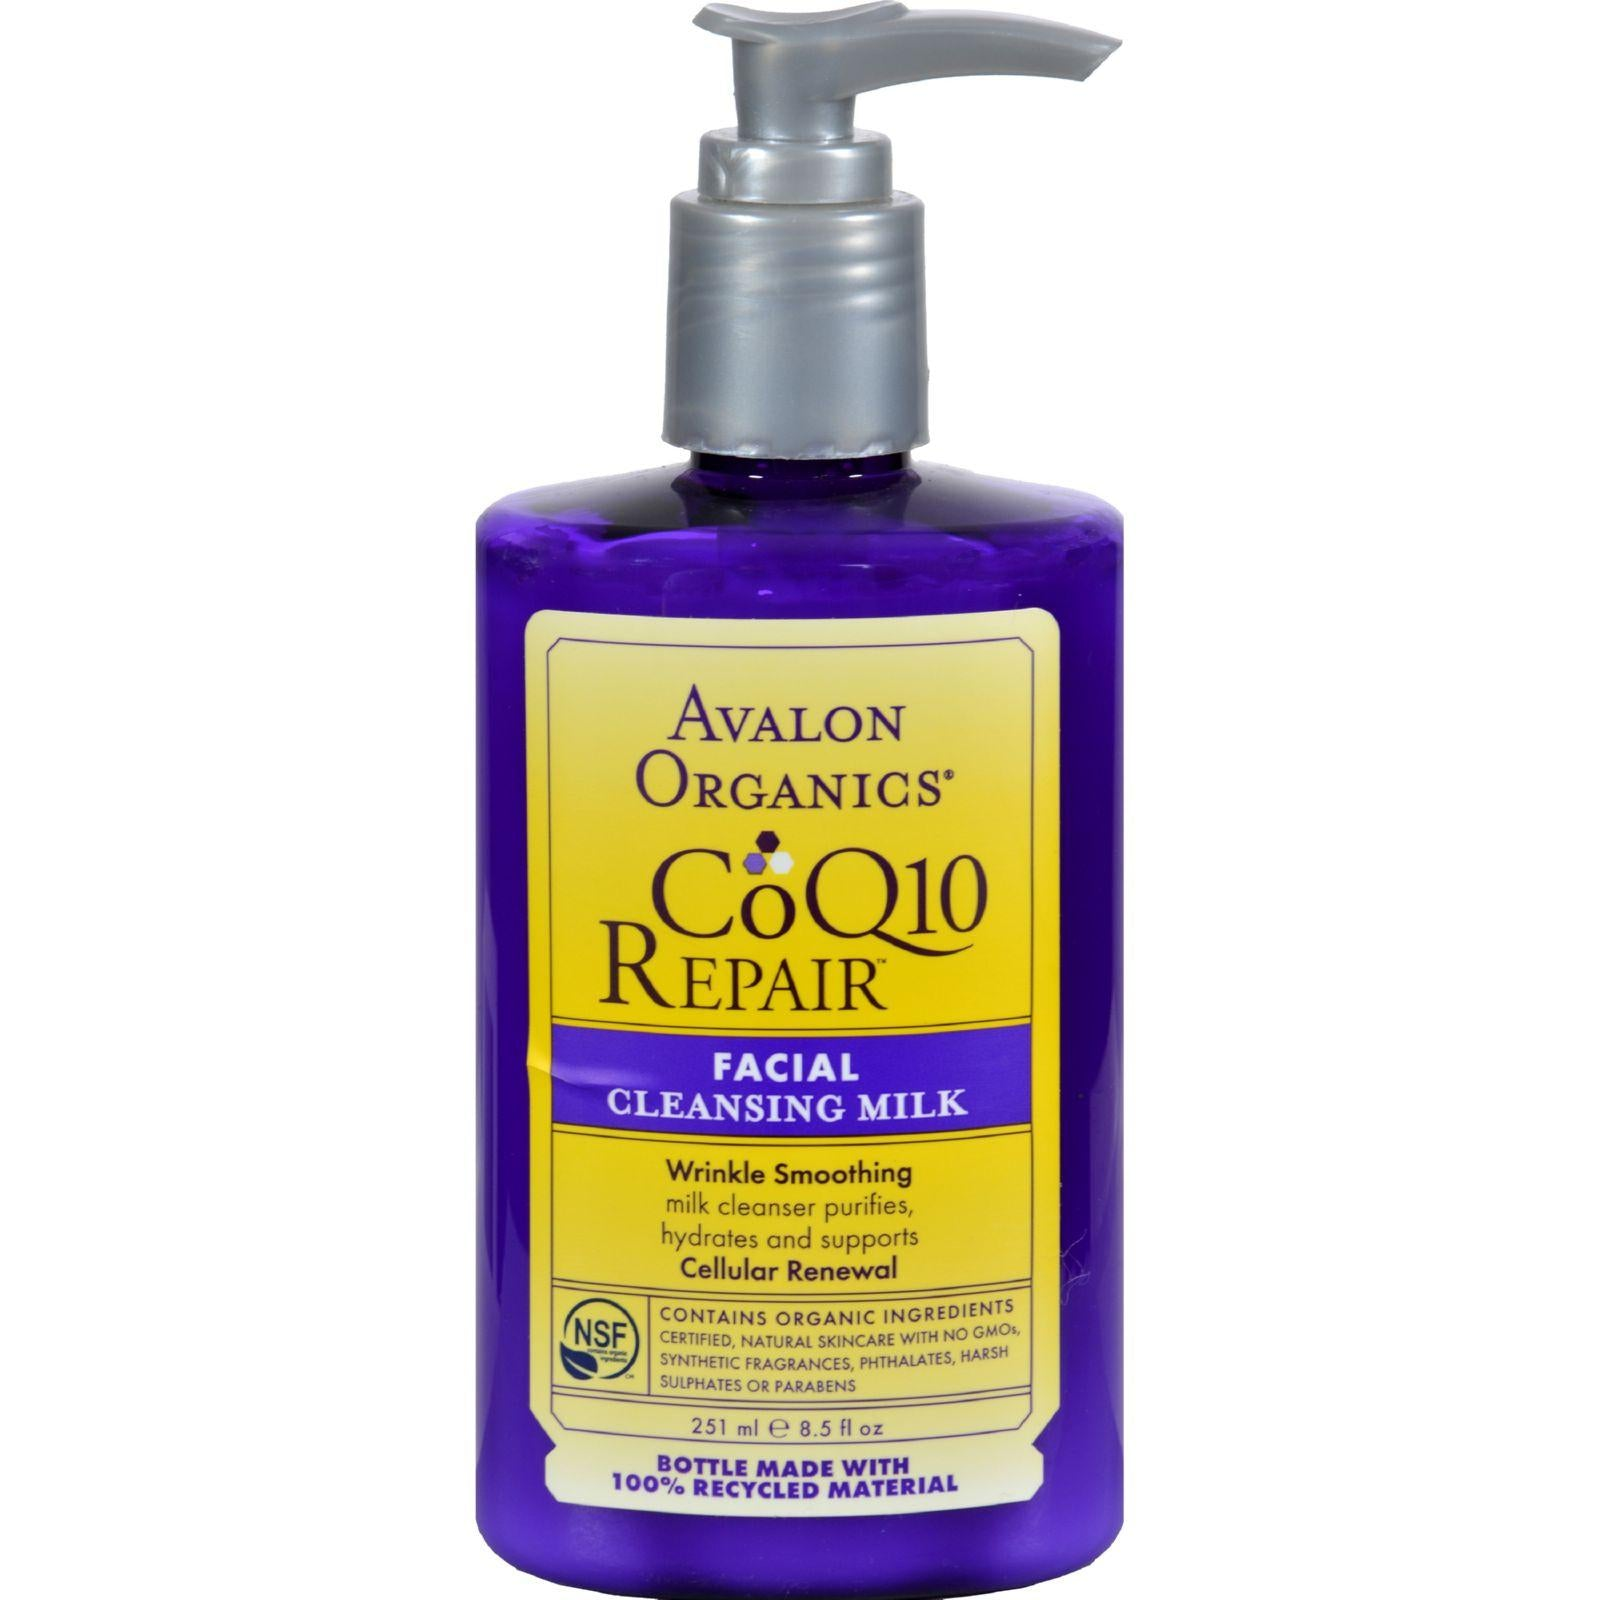 Avalon Organics Facial Cleansing Milk - 8.5 Fl Oz